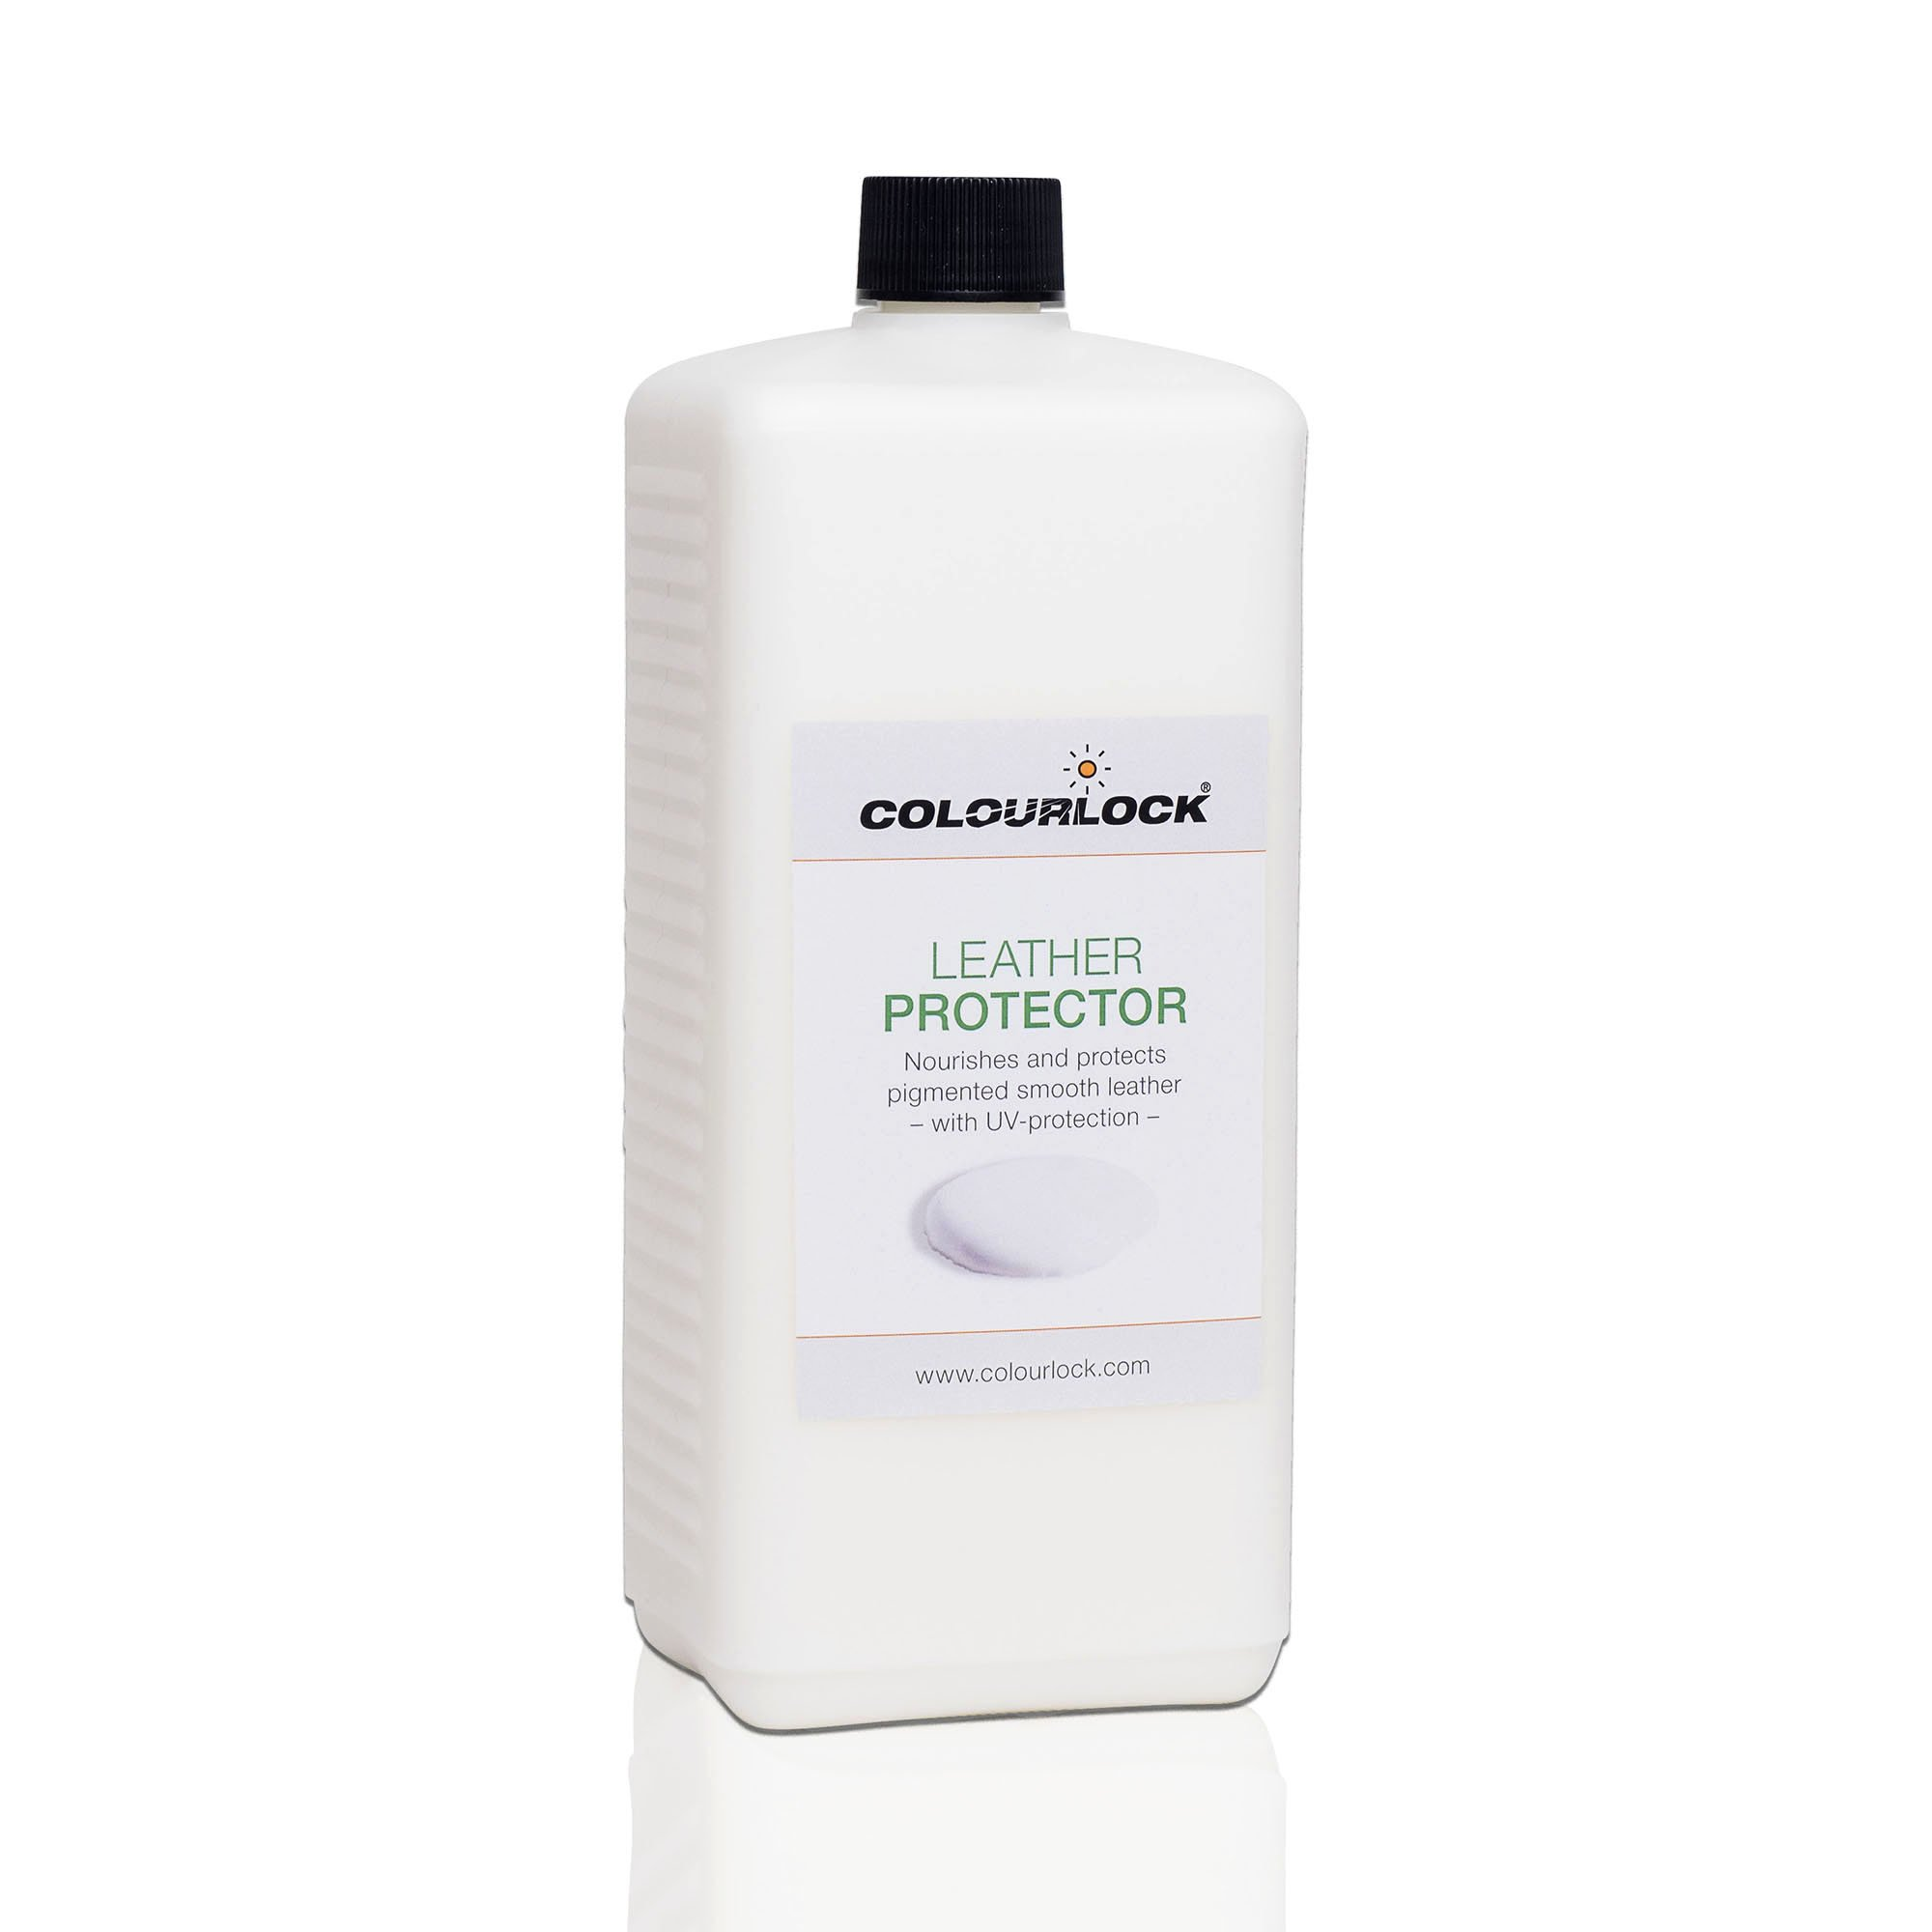 COLOURLOCK Leather Protector feed, cream, restorer for car leather interiors, furniture, bags and clothing (1 Litre)